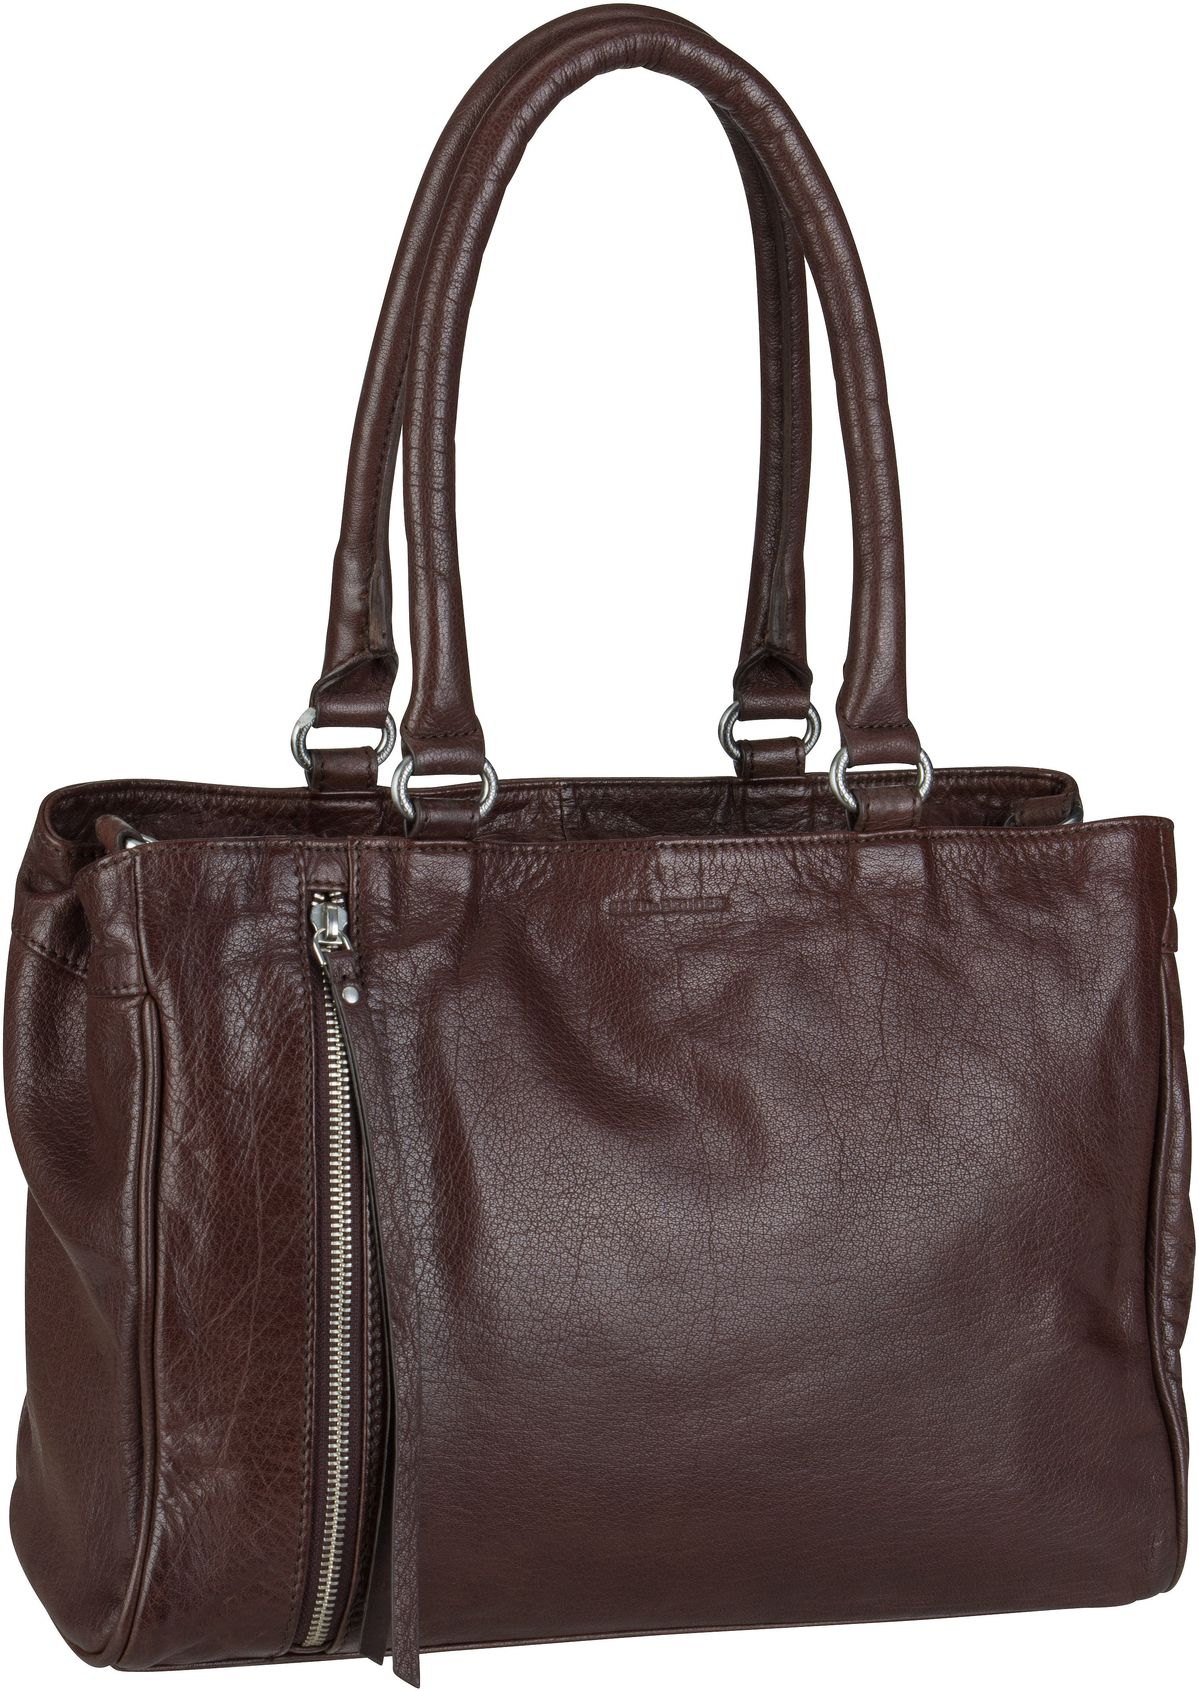 Handtasche Oomph Pep Brown